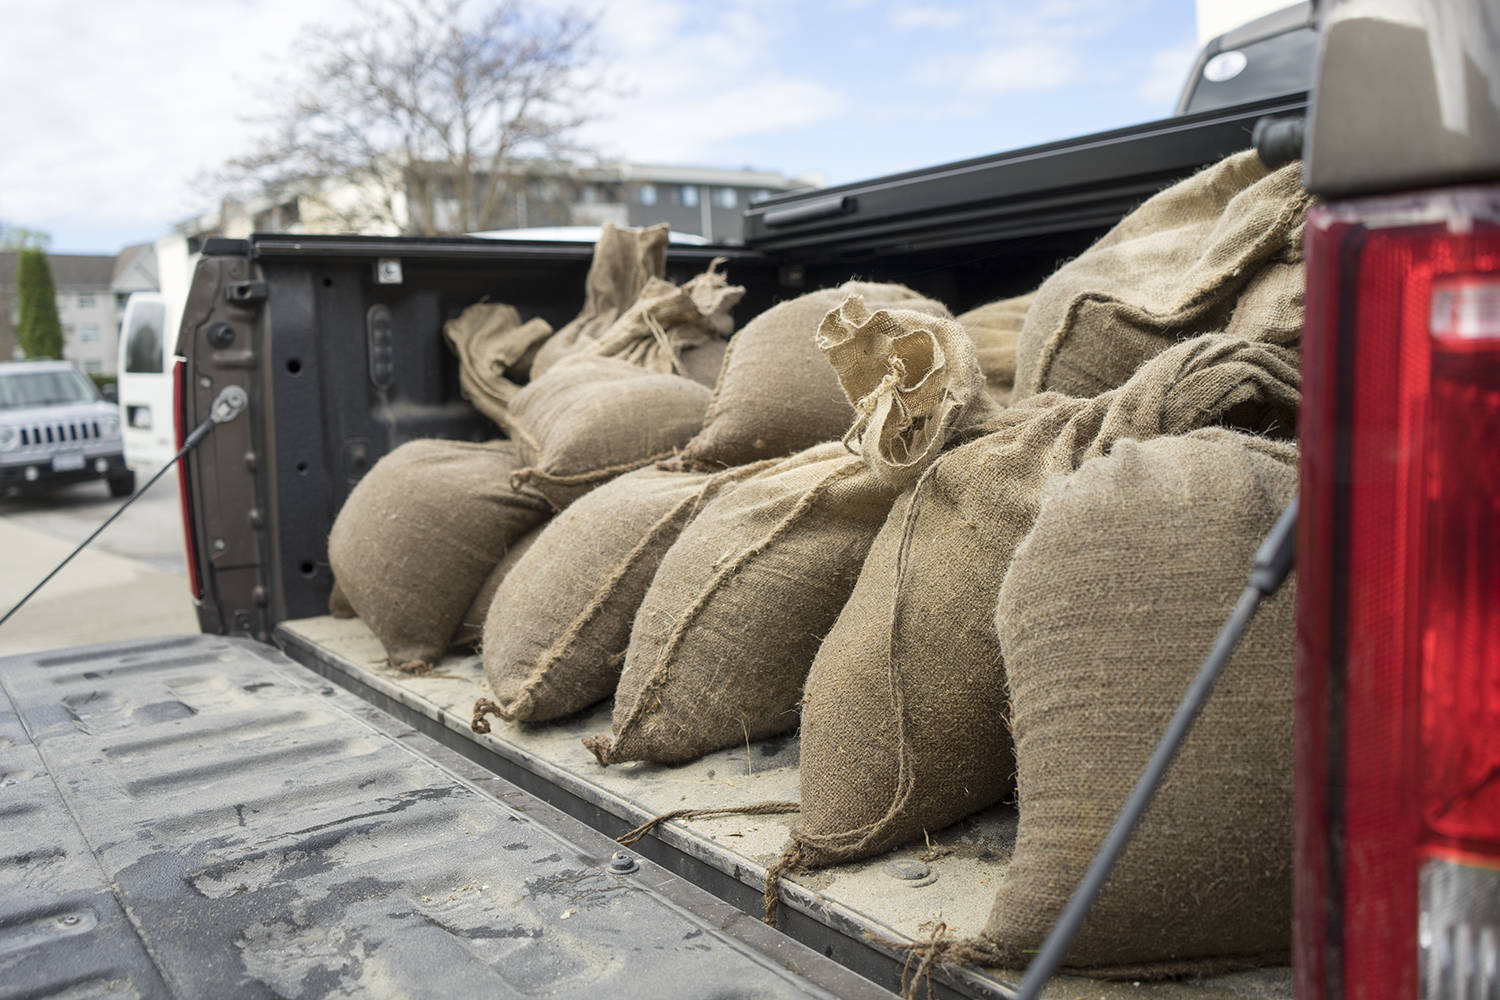 Sandbags in the back of a truck as Pacific Court residents combat early morning flooding on May 7, 2020. (Michael Rodriguez - Kelowna Capital News)